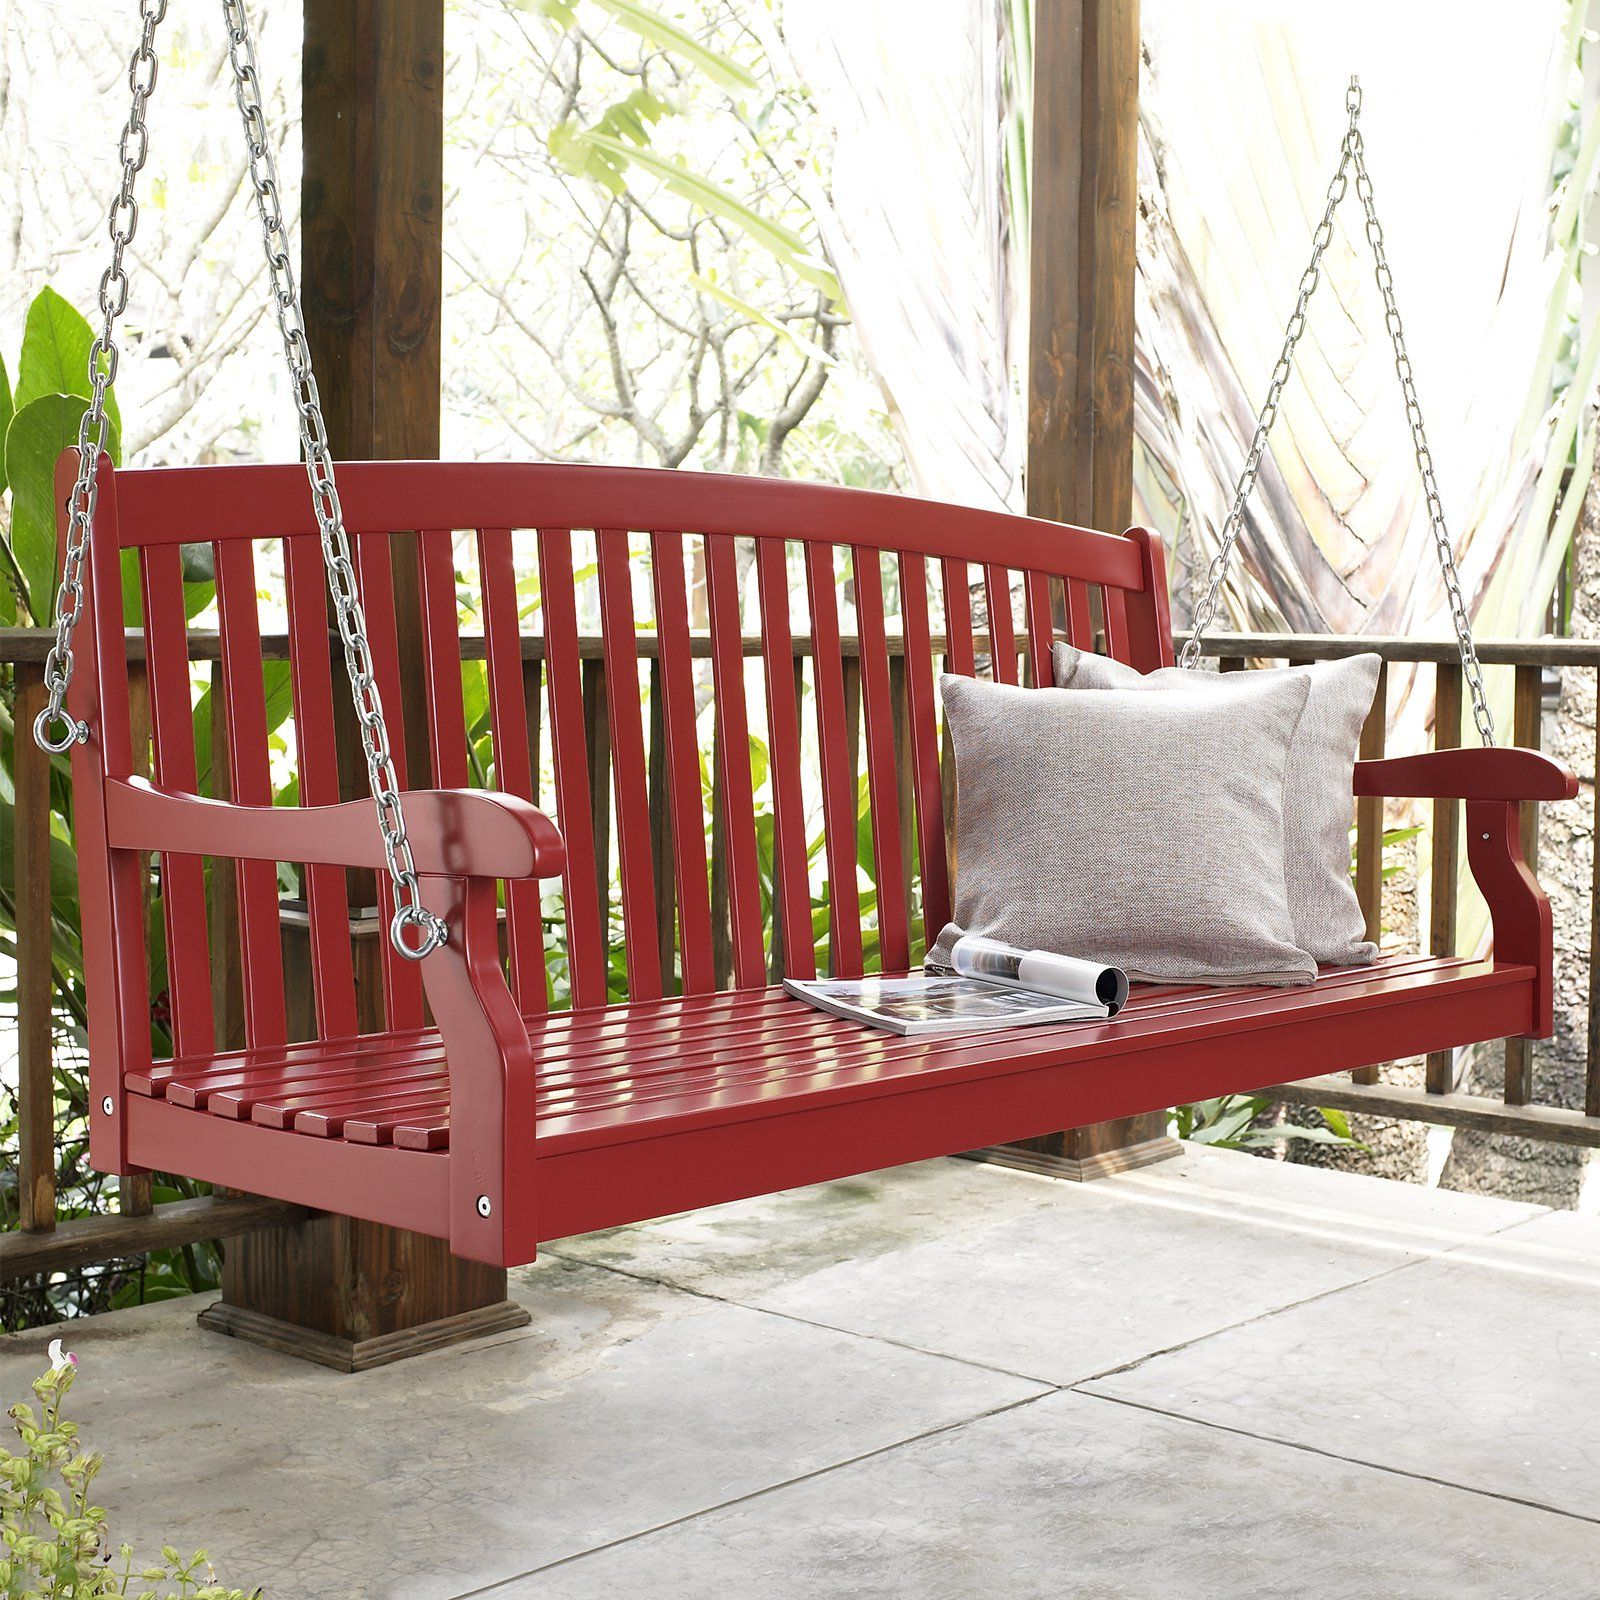 Coral Coast Pleasant Bay Curved Back Porch Swing Painted Red The Pleasant Bay Wood Painted Porch Swing Painte Porch Swing House With Porch Swing Painting